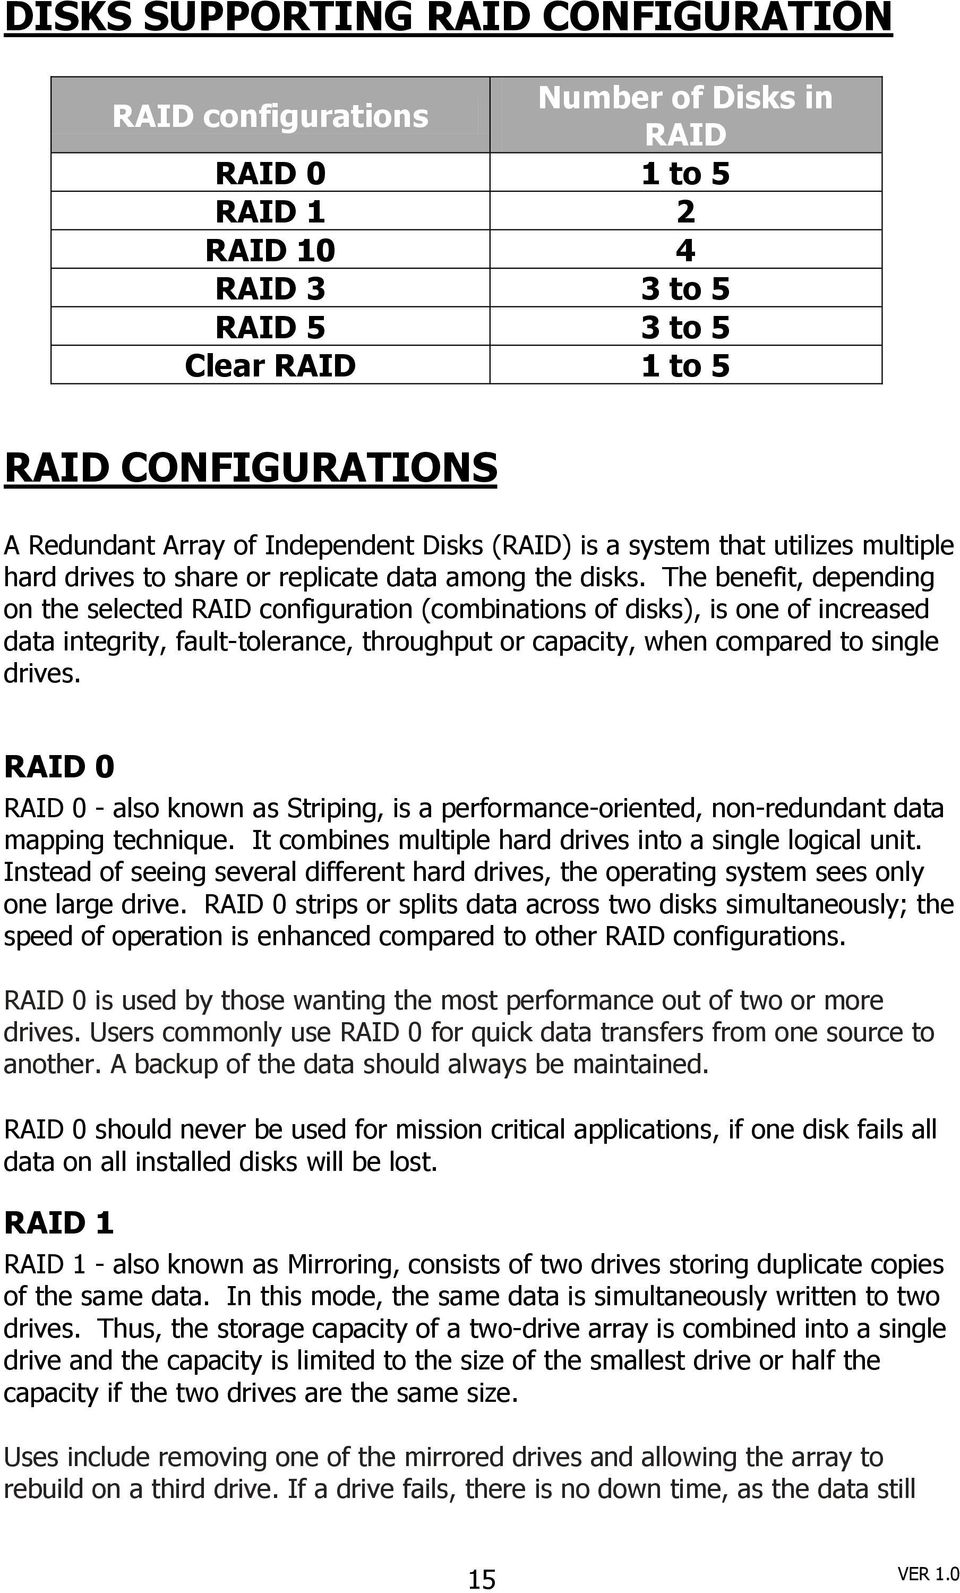 The benefit, depending on the selected RAID configuration (combinations of disks), is one of increased data integrity, fault-tolerance, throughput or capacity, when compared to single drives.